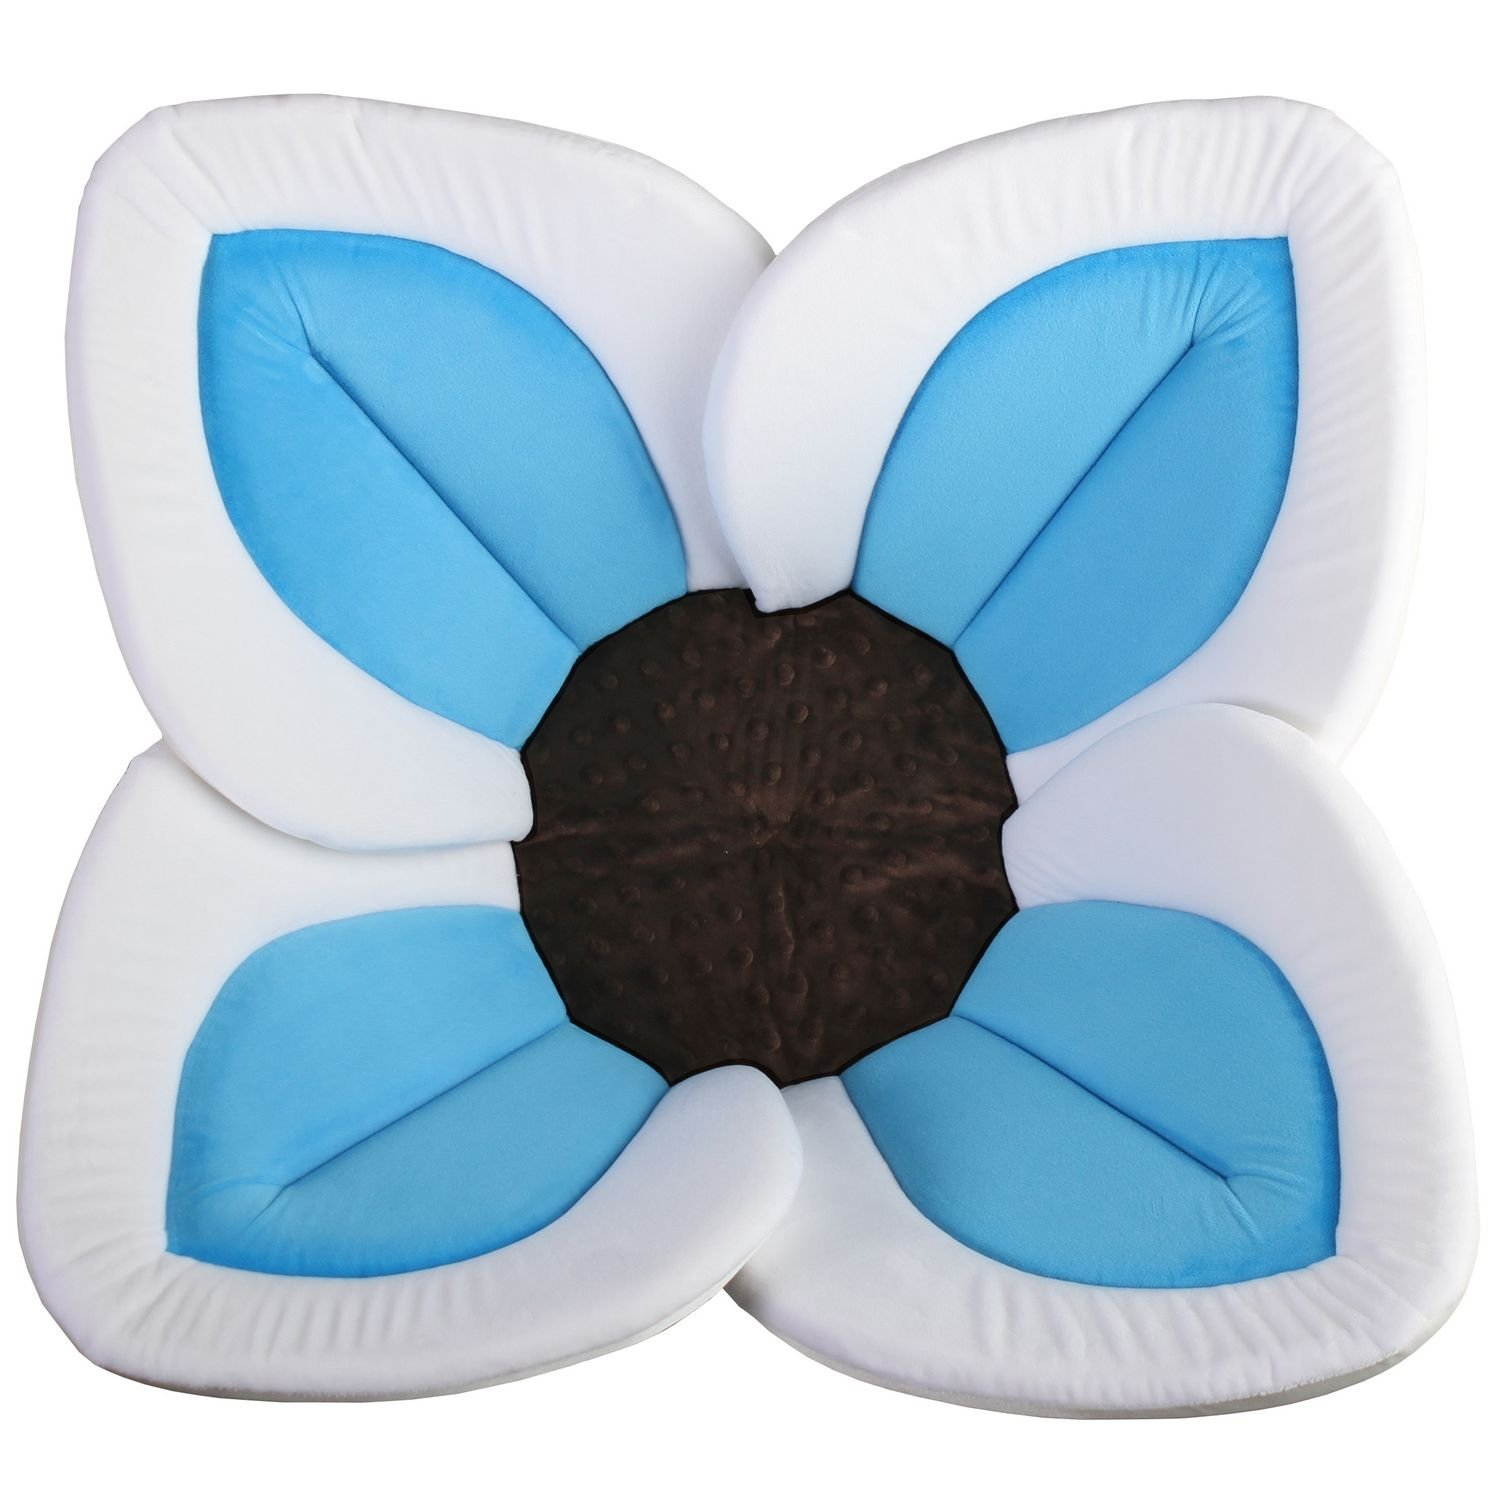 GENUINE Blooming Bath Lotus - Baby Bath (Blue): Amazon.co.uk: Baby